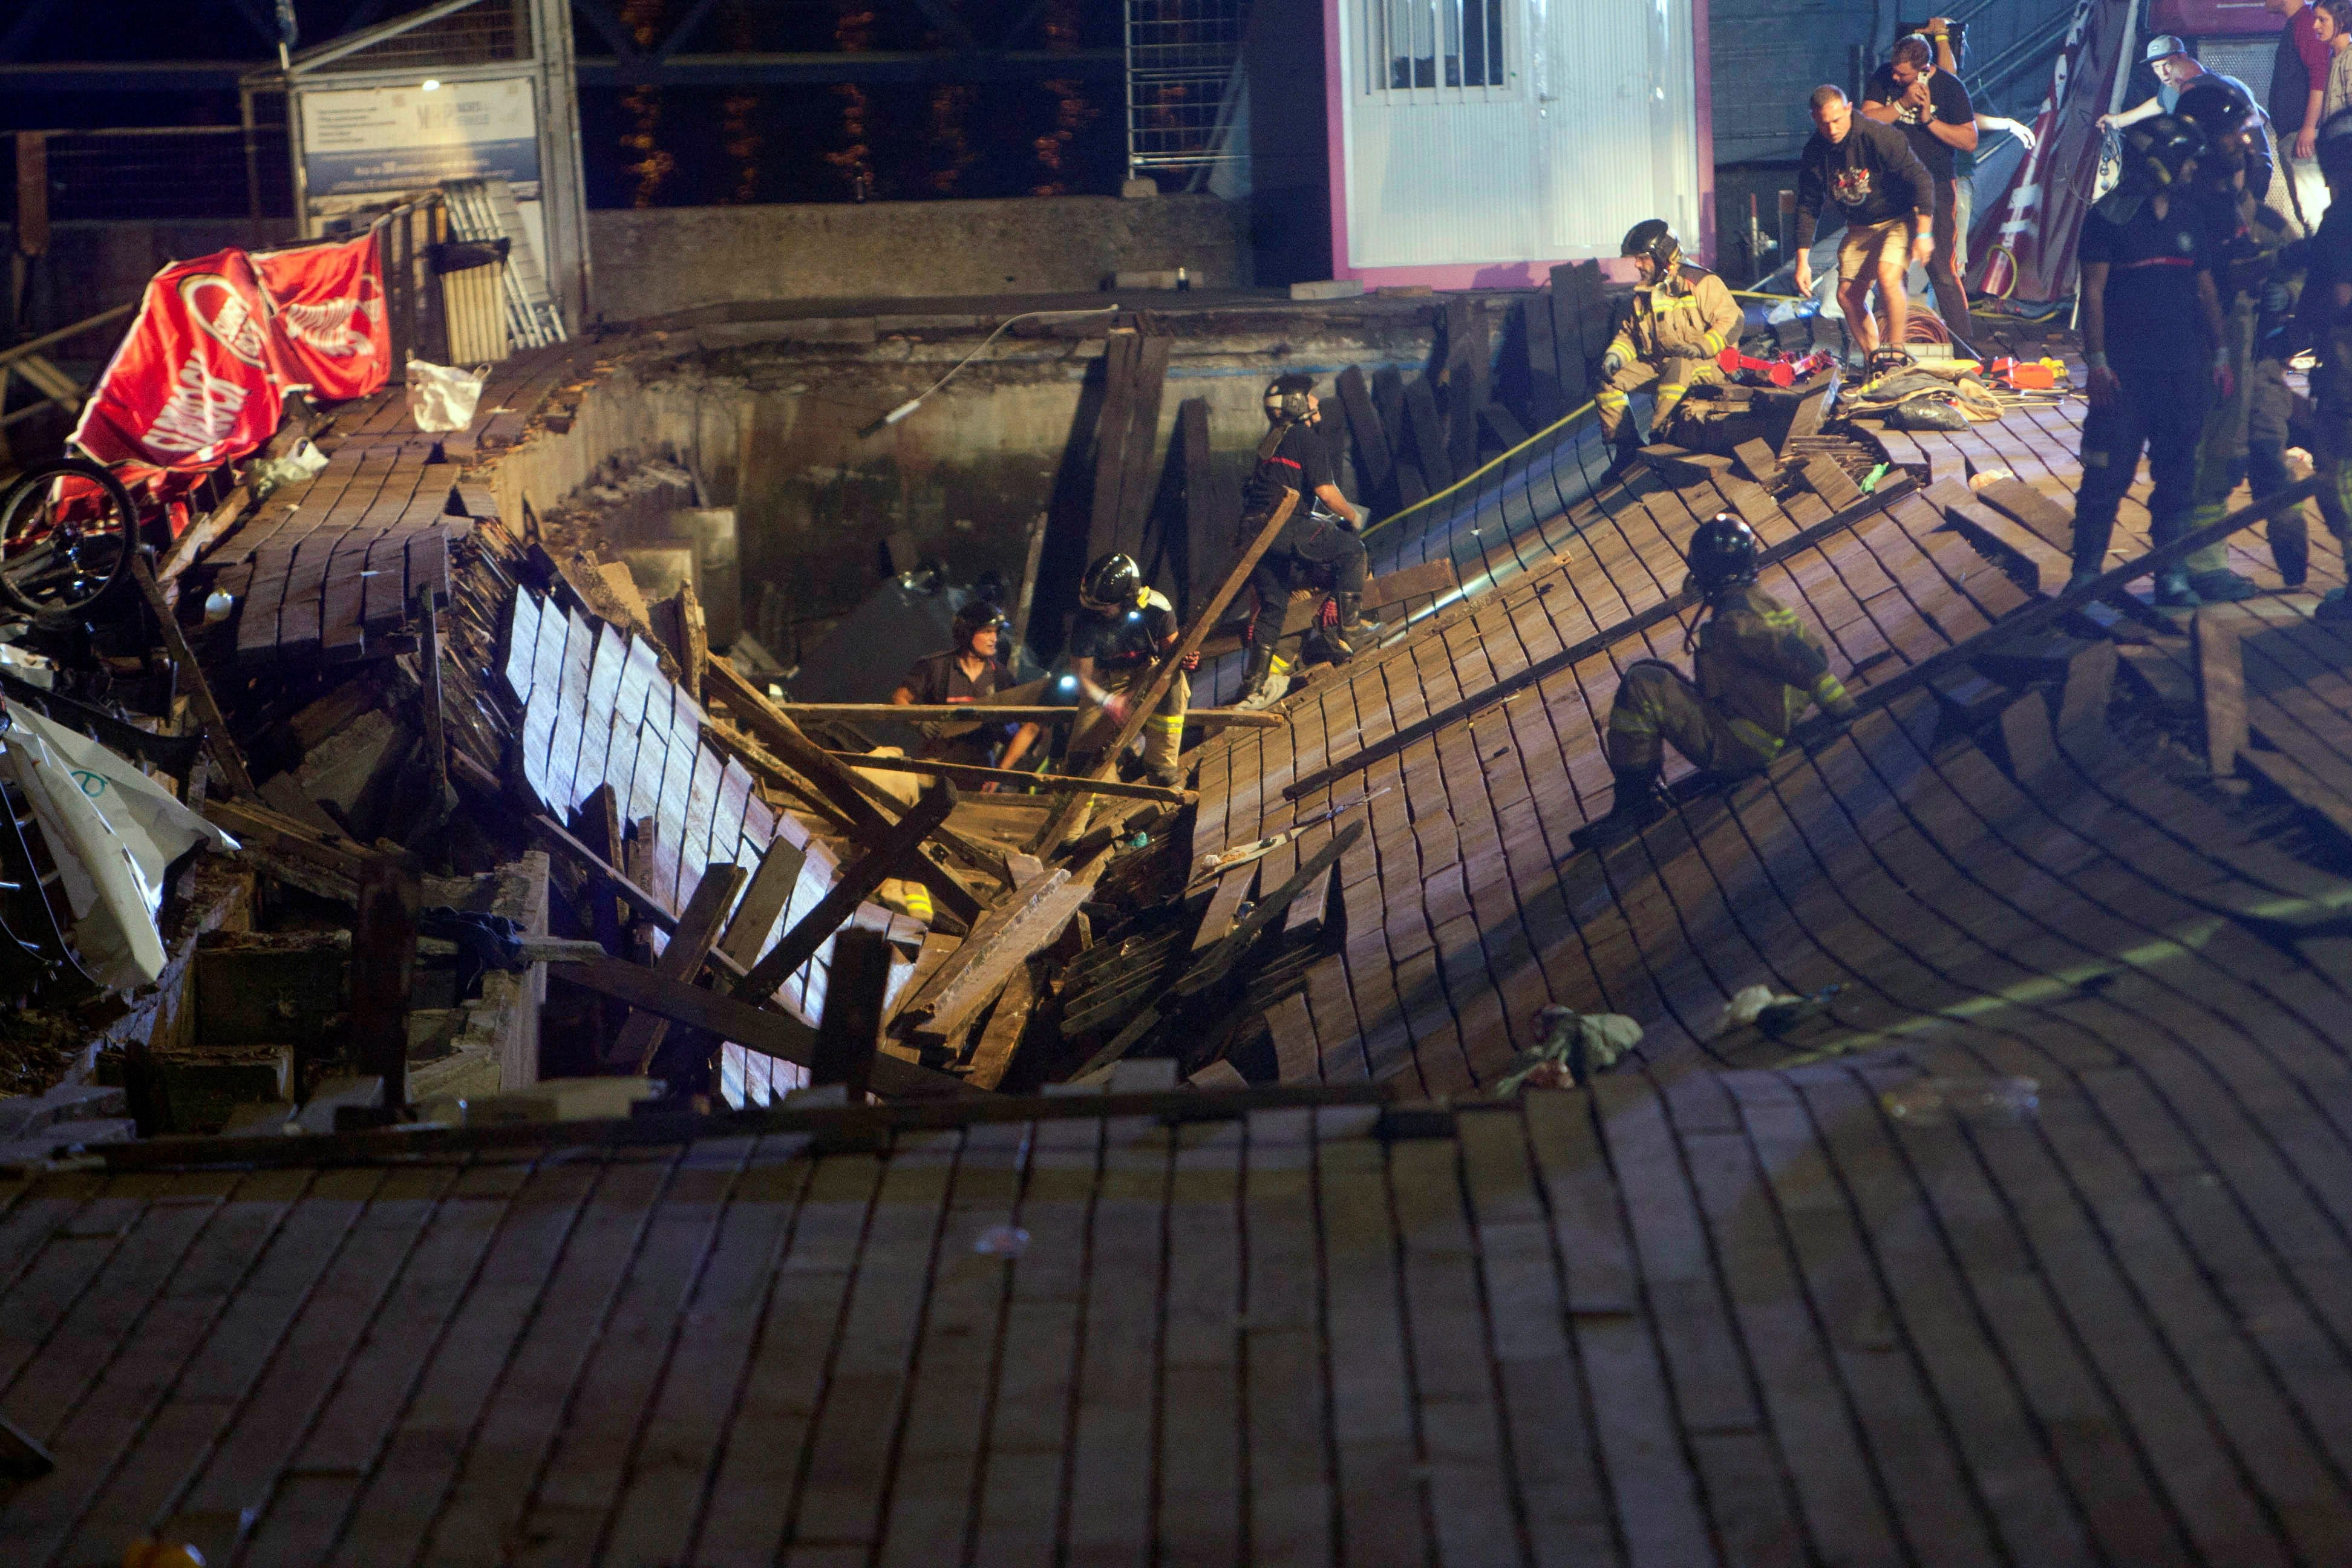 Hundreds injured when boardwalk collapses into the sea at Spanish festival